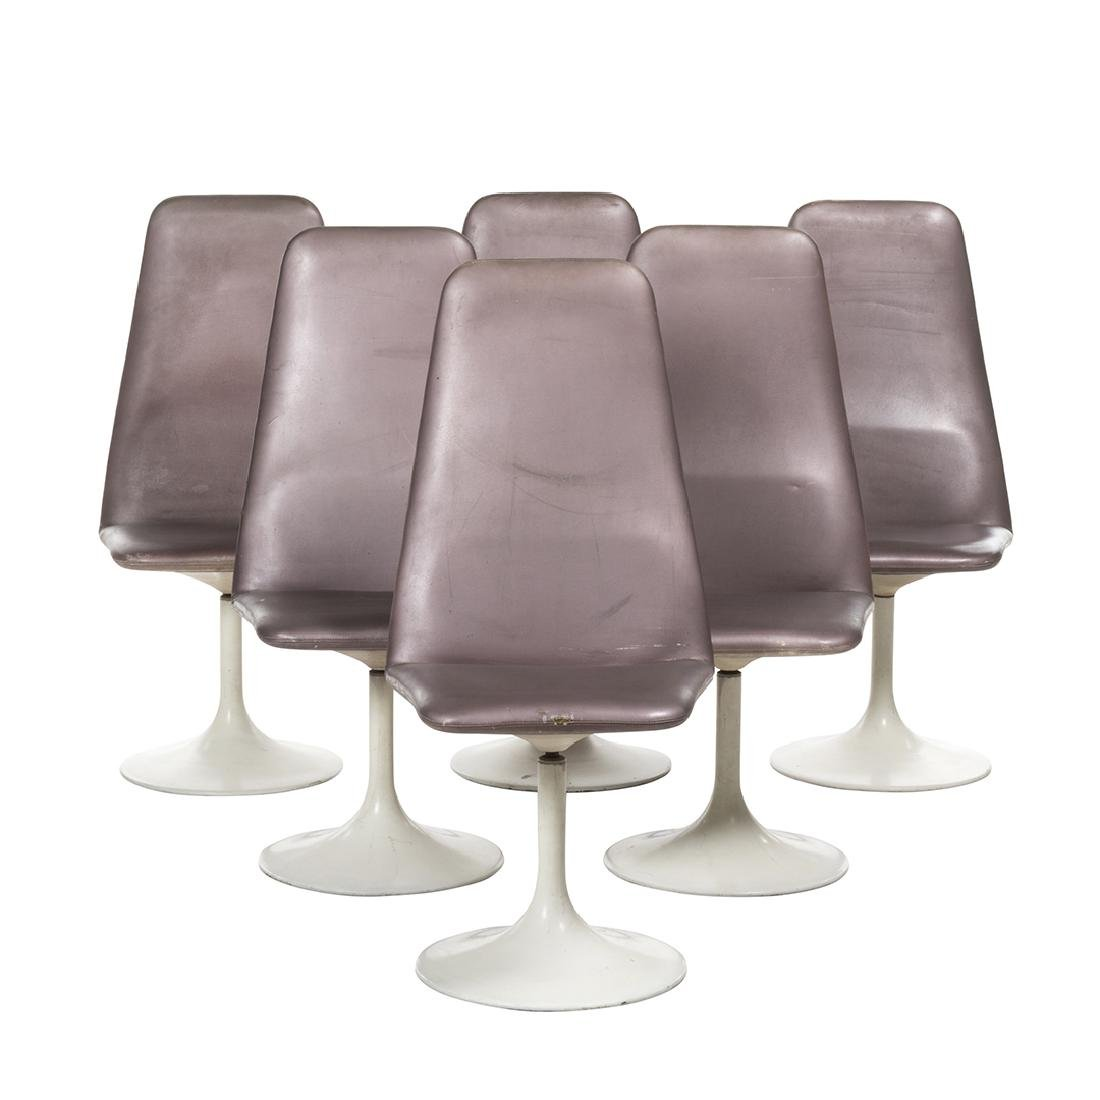 Borje Johansson Dining Chairs (6)